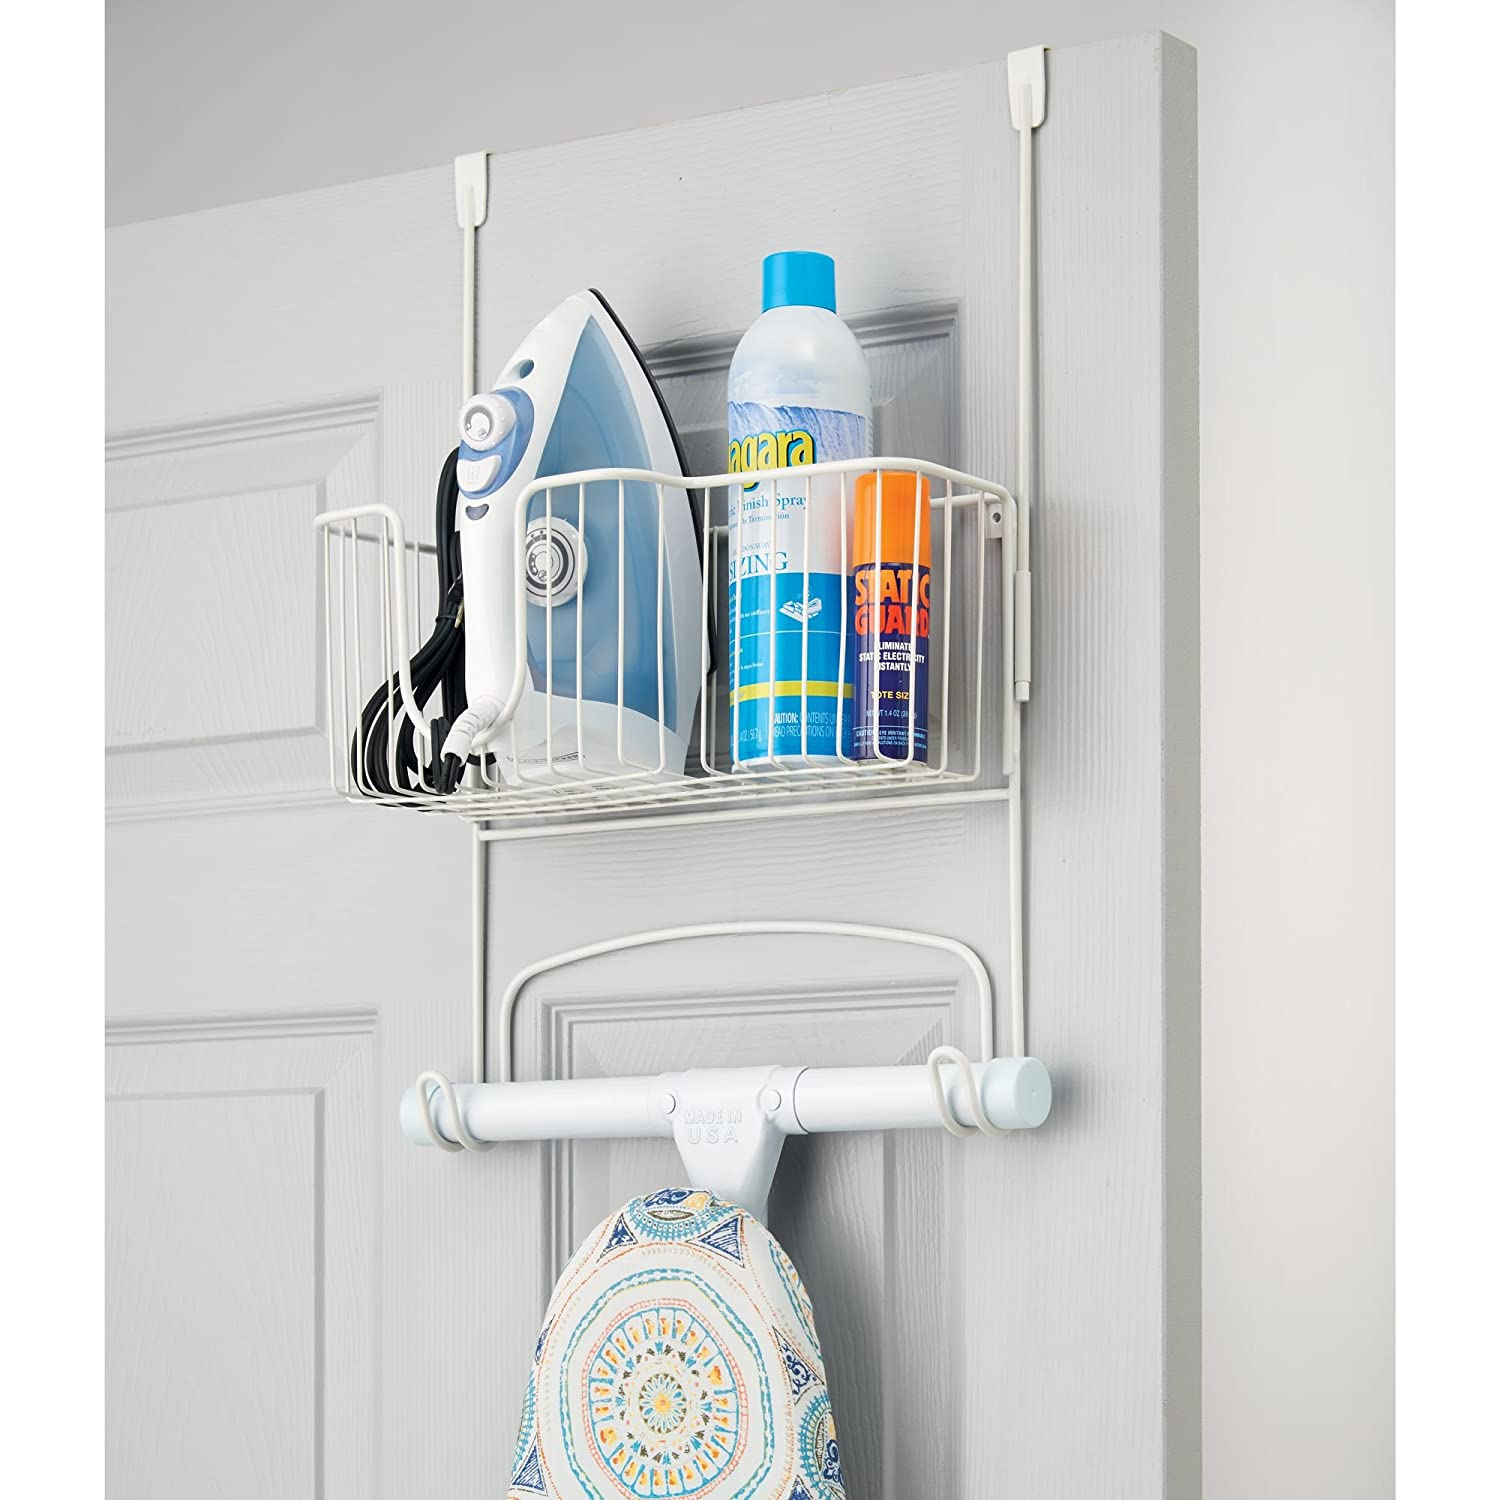 MDesign Over The Door Ironing Board Hanger   Steel Ironing Board Rack For  Easy Organisation   Includes Basket For Iron ...